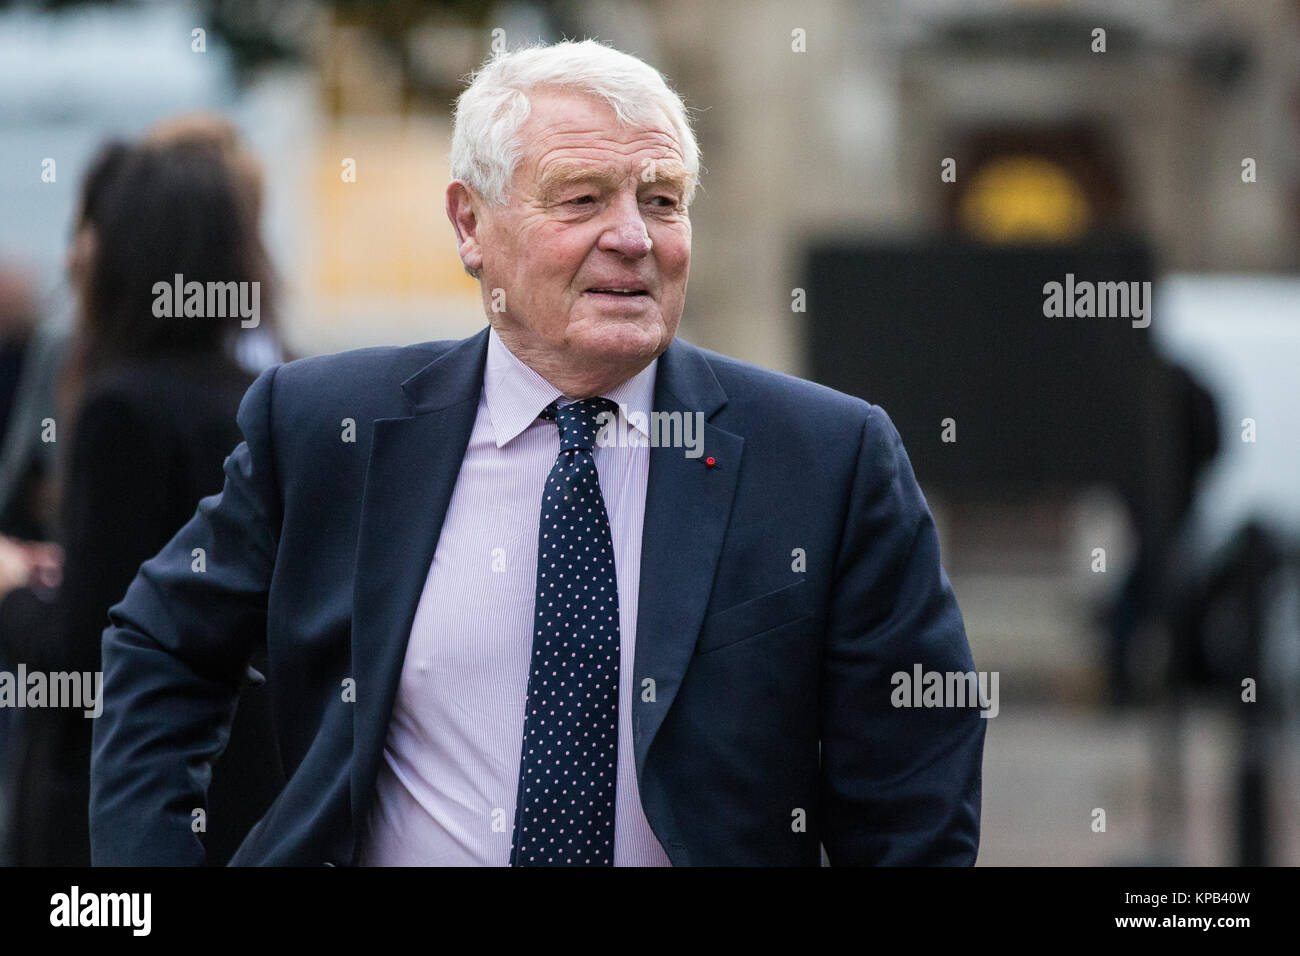 London, UK. 22nd November, 2017. Paddy Ashdown, Liberal Democrat politican and former diplomat, arrives on College Stock Photo